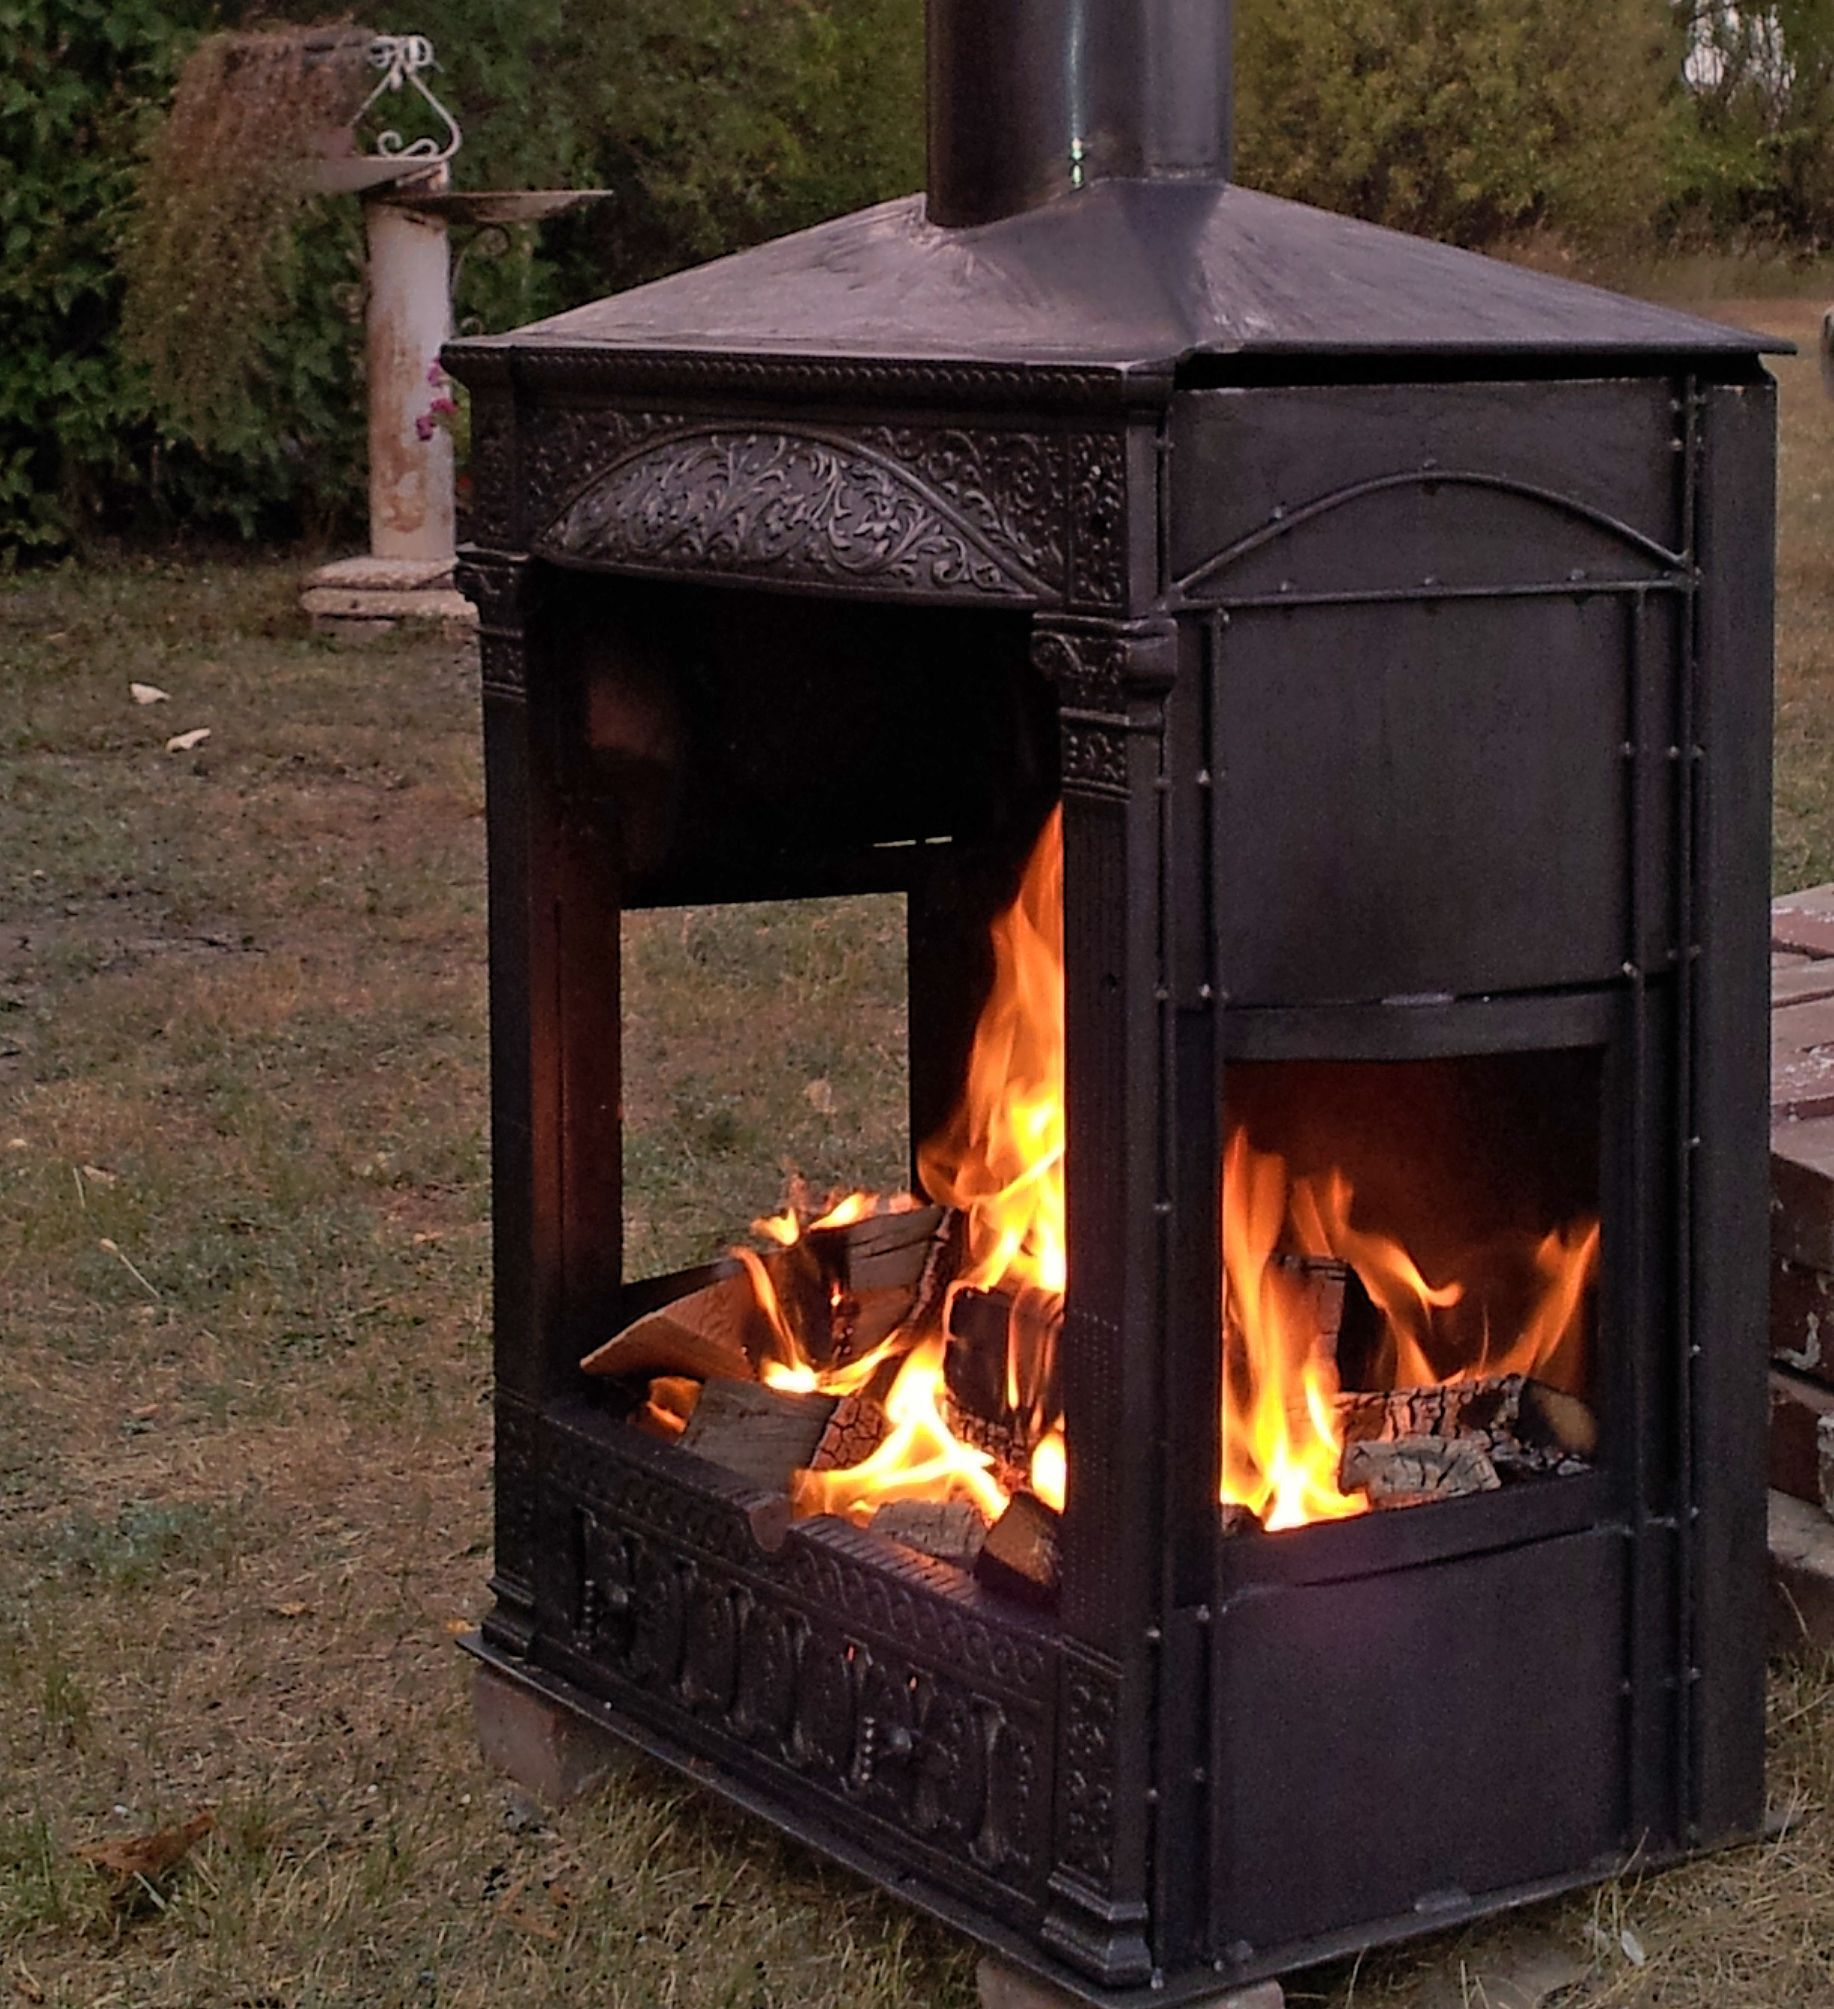 This is an outdoor fireplace, built by welding an antique ...